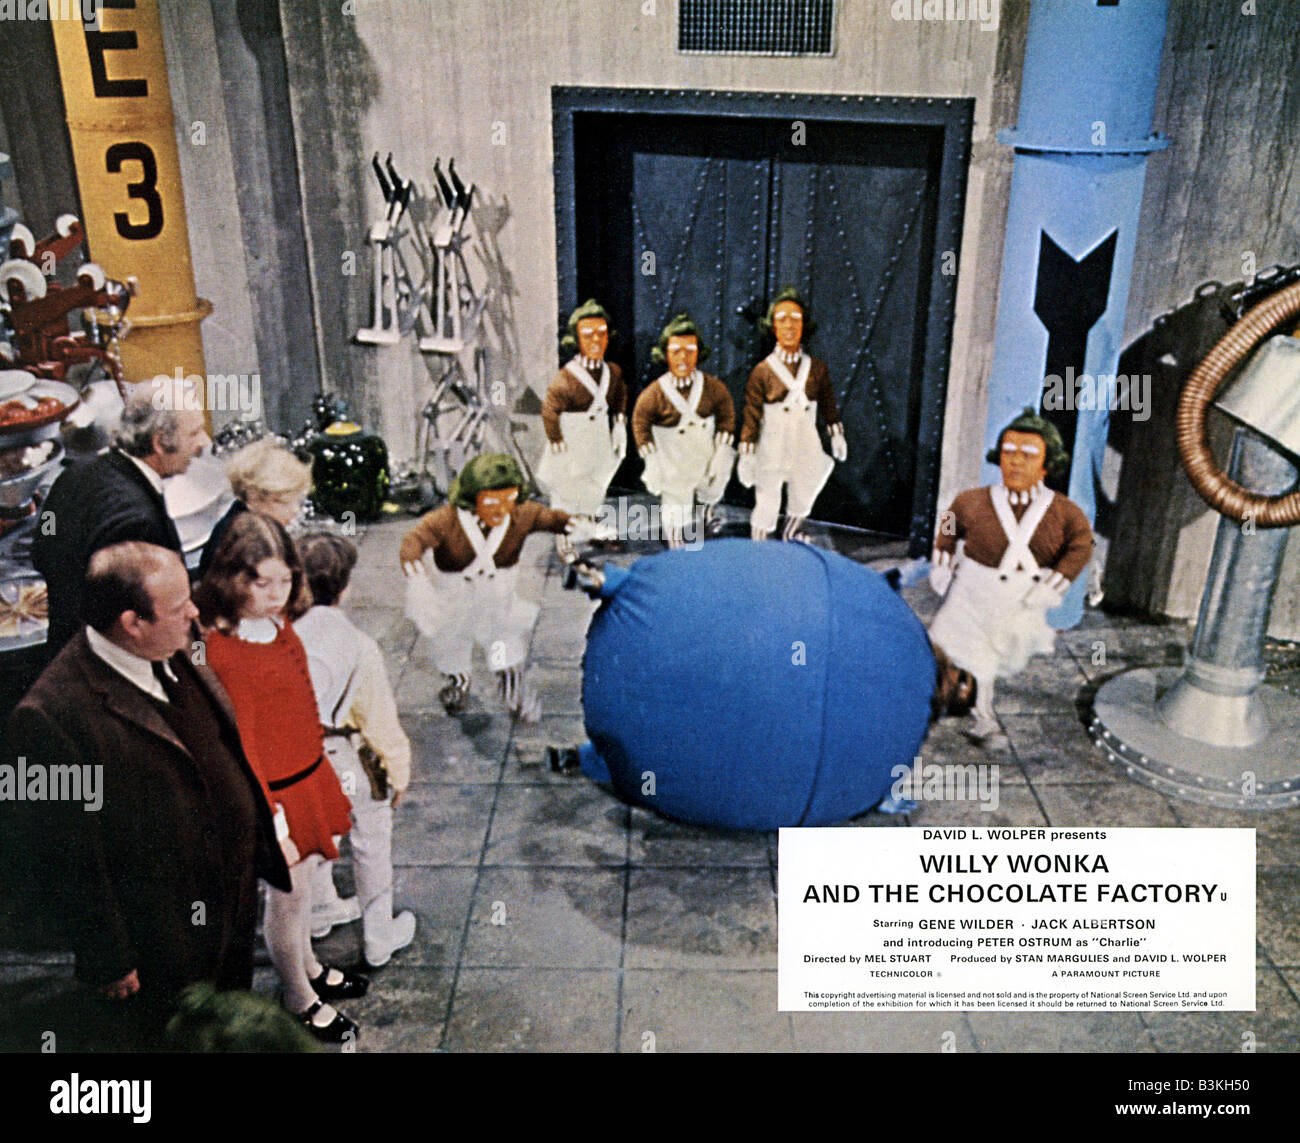 willy wonka and the chocolate factory david wolper film  willy wonka and the chocolate factory 1971 david wolper film gene wilder